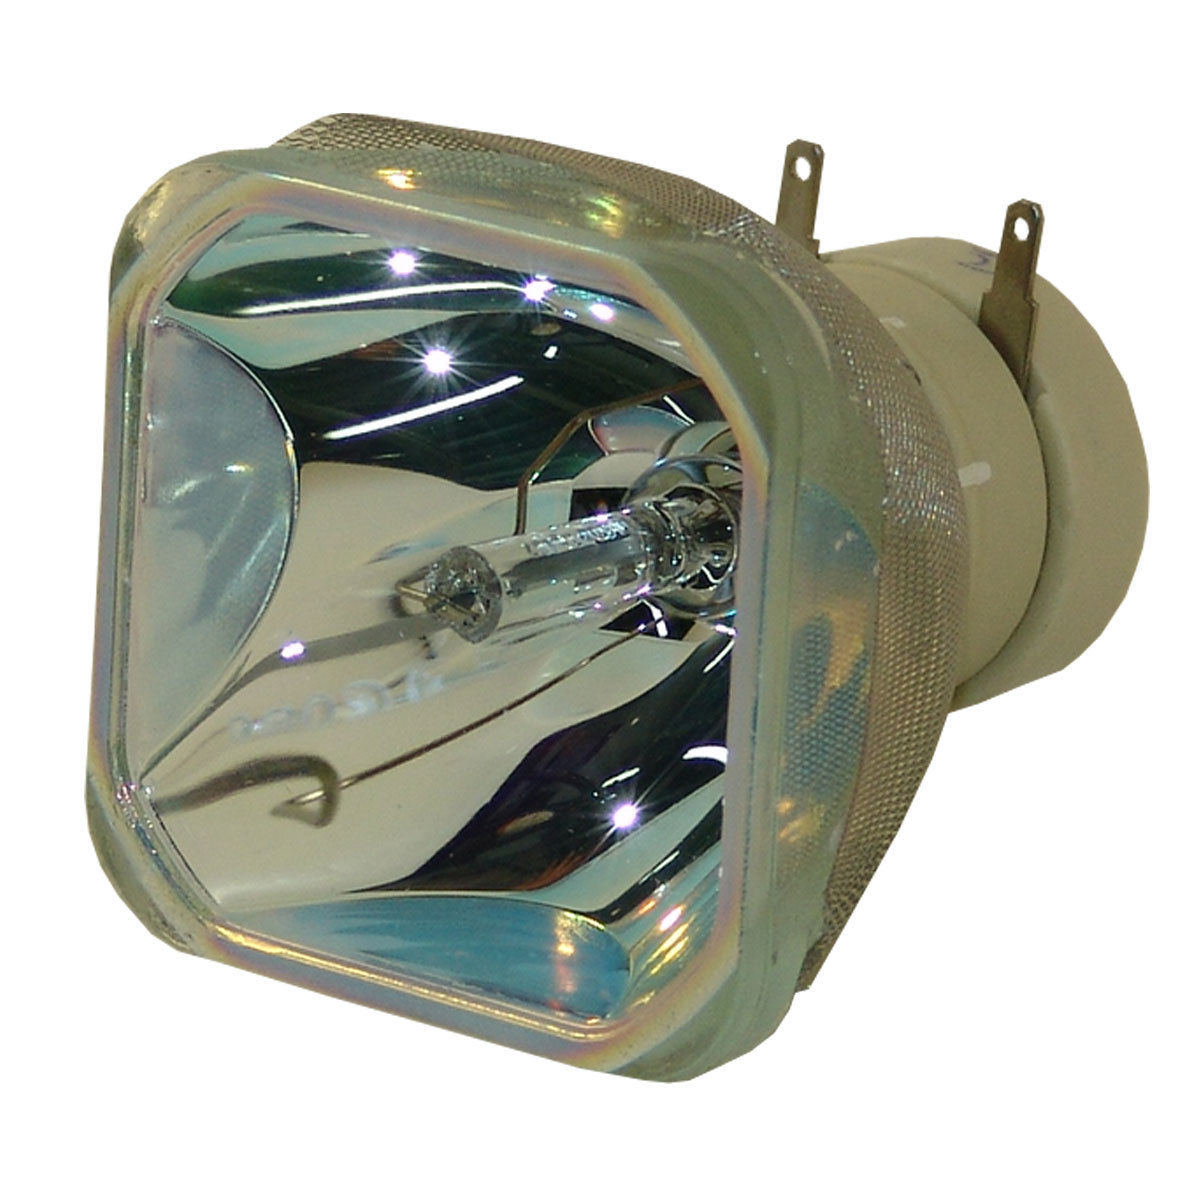 LMP-E211 LMPE211 for Sony VPL-EX100 VPL-EX120 VPL-EX145 VPL-EX175 VPL-EW130 VPL-SW125 Projector Lamp Bulb Without Housing projector housing lamp bulb lmp e211 for sony vpl sw536 vpl sx125 vpl sw125 vpl sx535 vpl sw535 vpl sw536c vpl sw535c